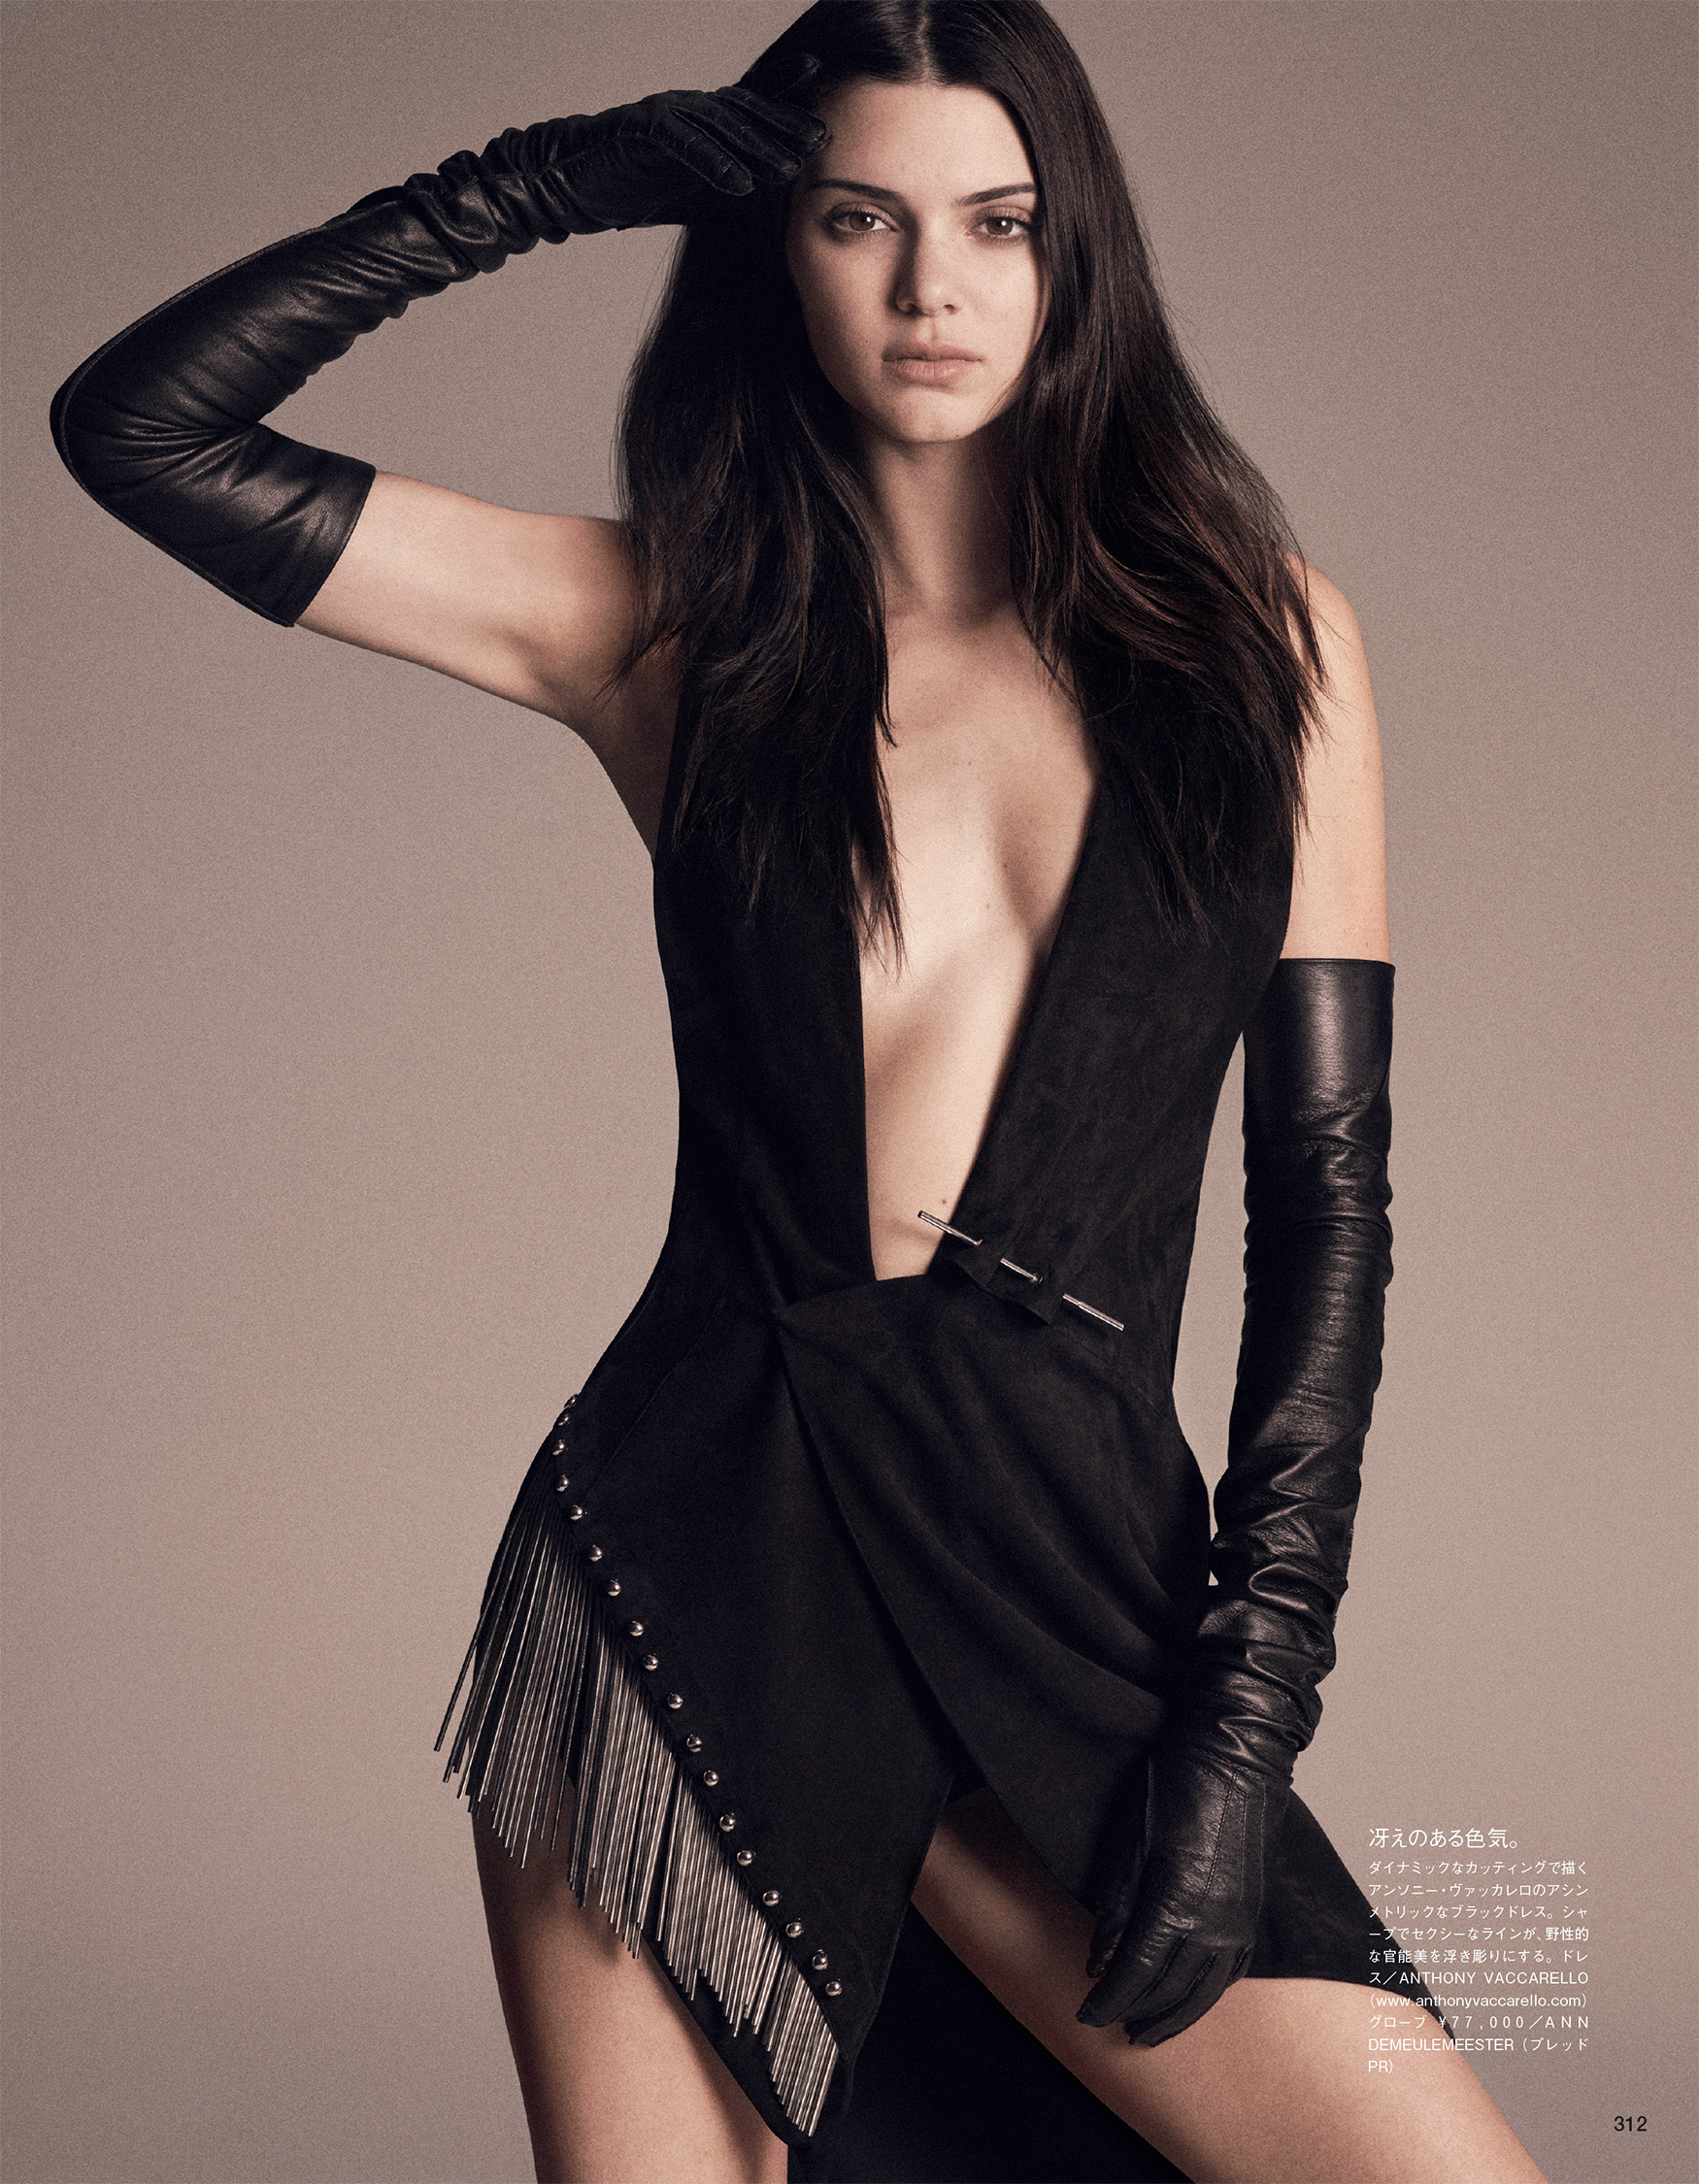 Giovanna-Battaglia-Vogue-Japan-November-2015-Cool-As-Kendall-Patrick-Demarchelier-Kendall-Jenner-8.jpg